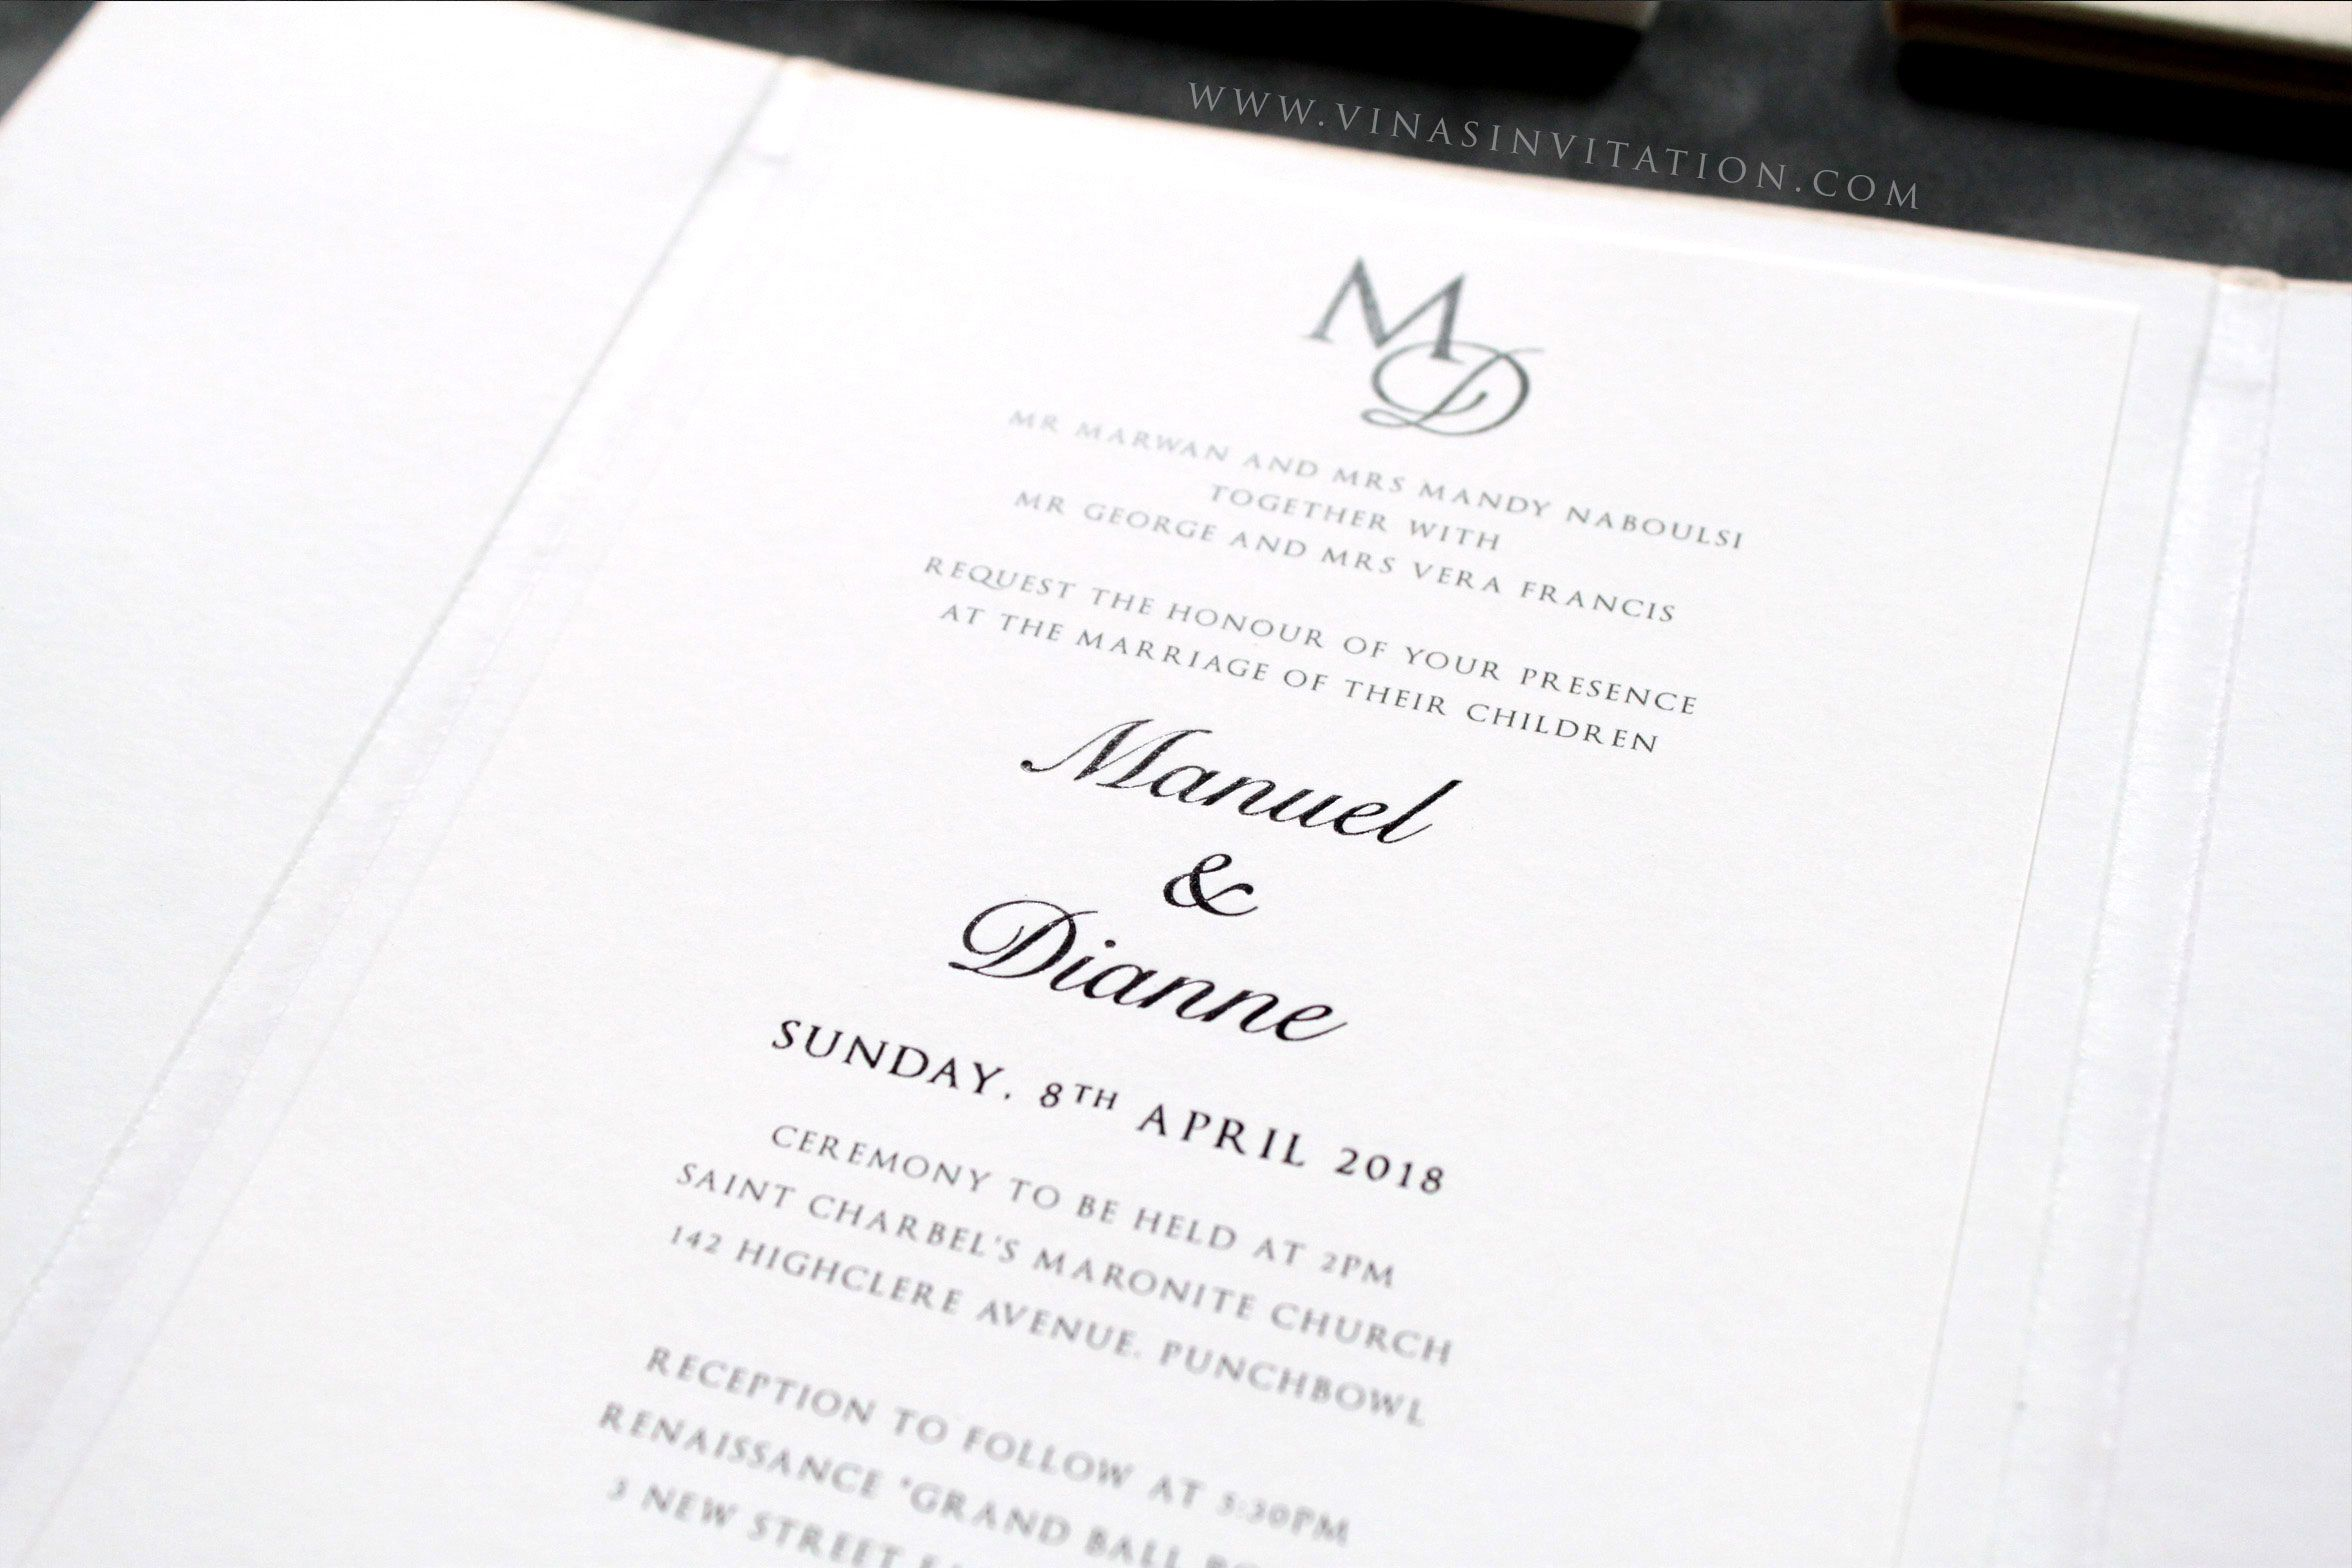 vinas invitation. australian wedding. suede invitation. suede finish ...